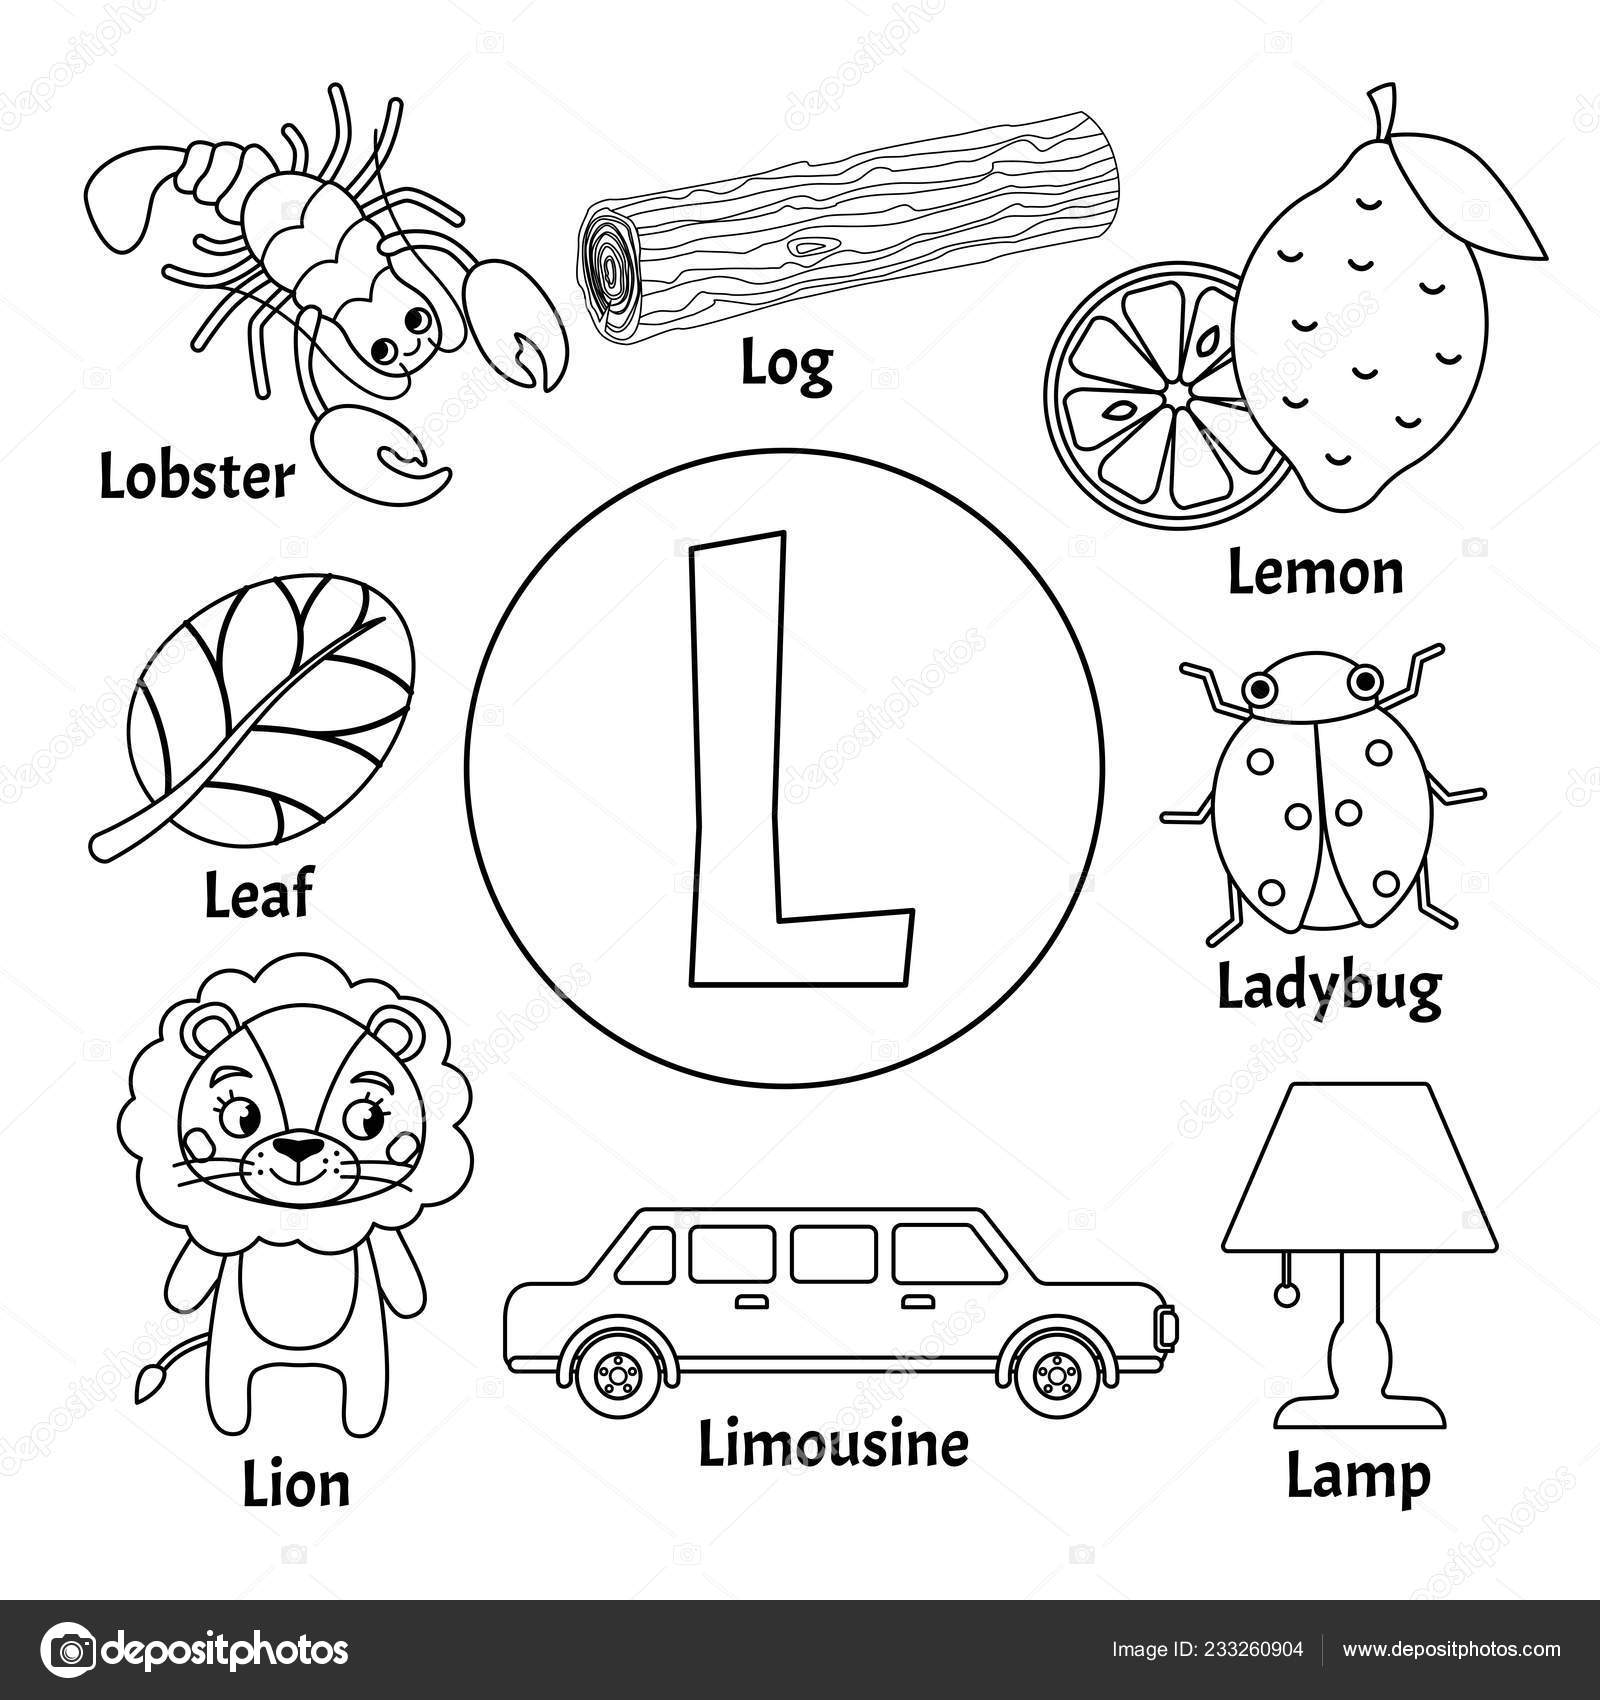 Princess Abc Worksheets Printable Worksheets And Activities For Teachers Parents Tutors And Homeschool Families